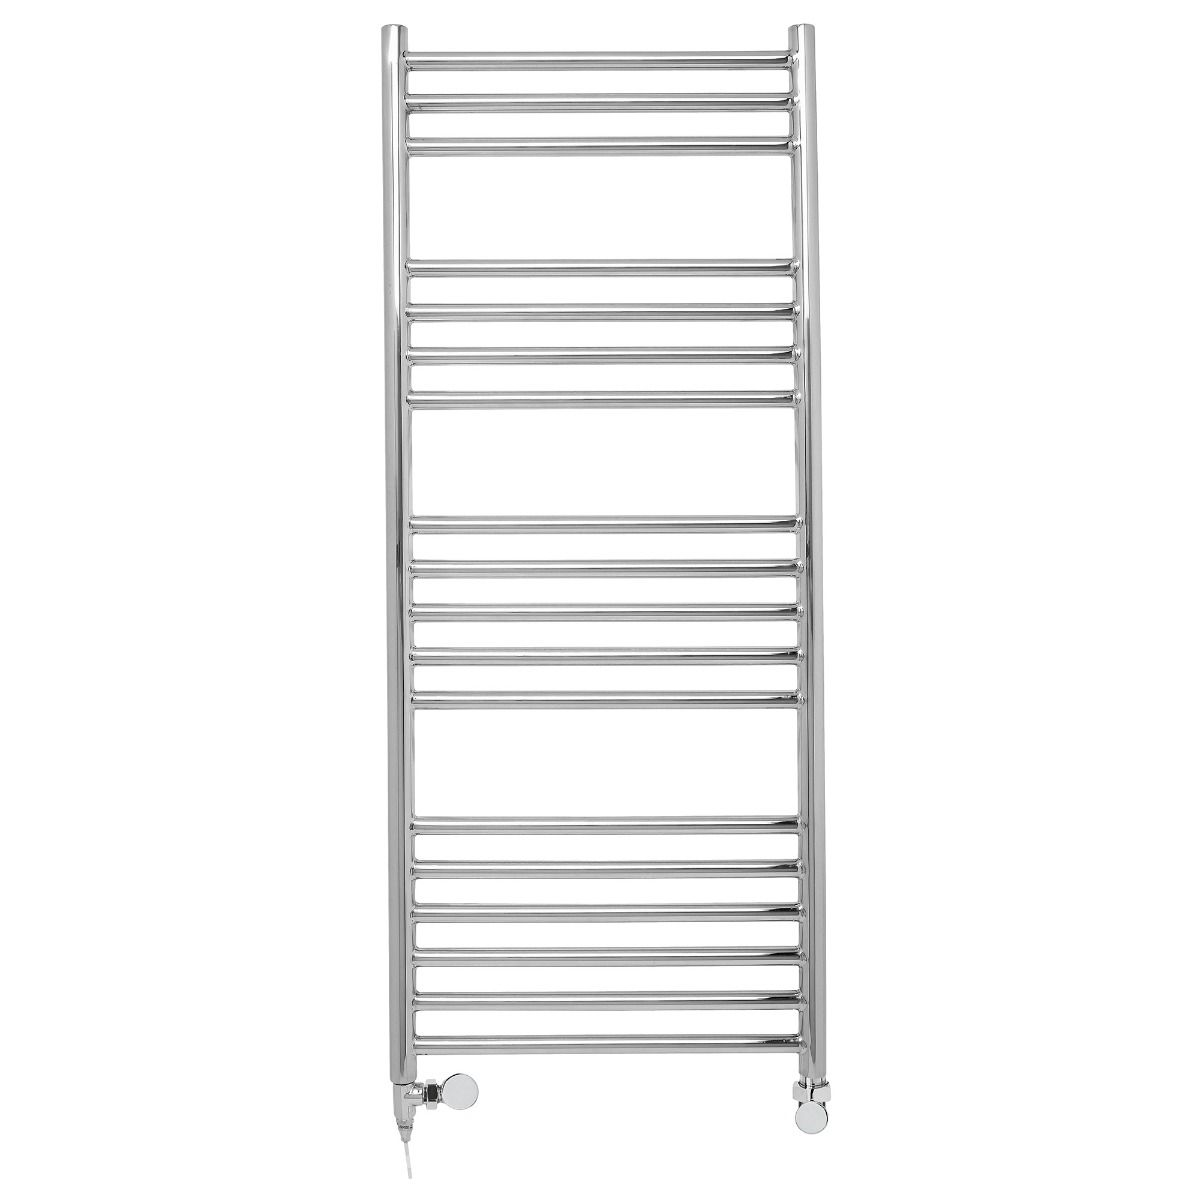 Stainless Steel Heated Towel Rail 120x50